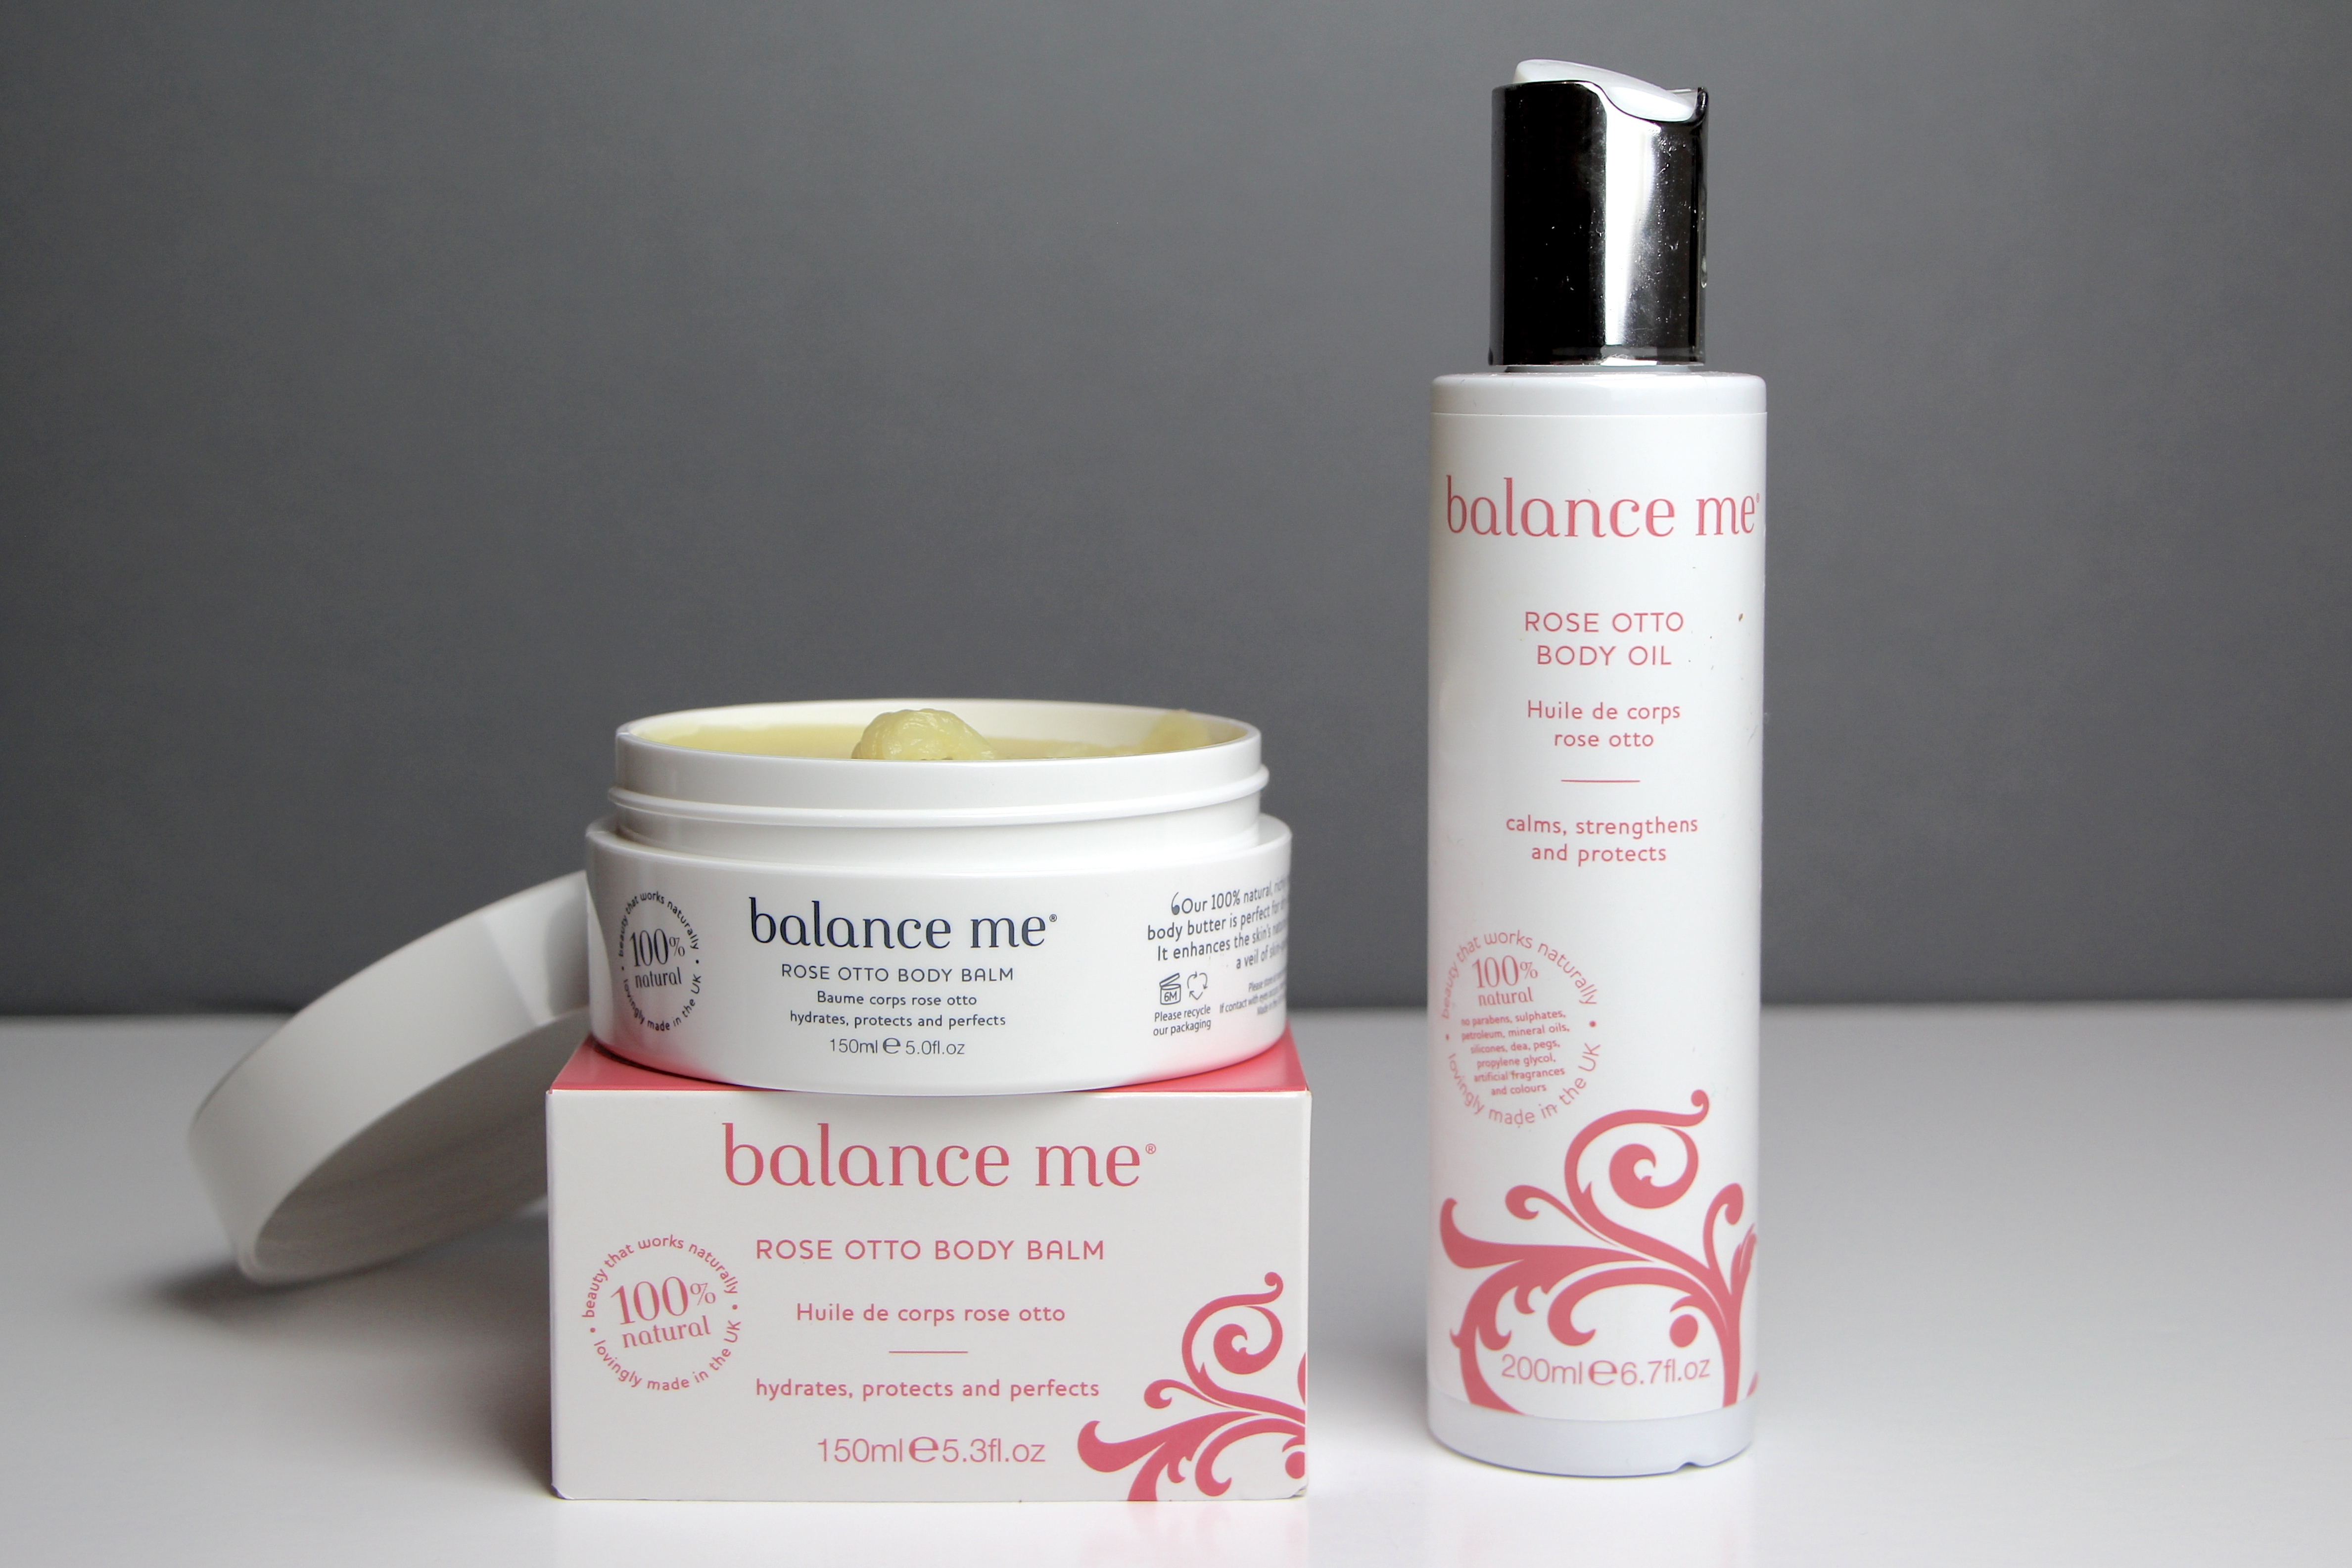 Balance Me Rose Otto Body Oil and Balm Review